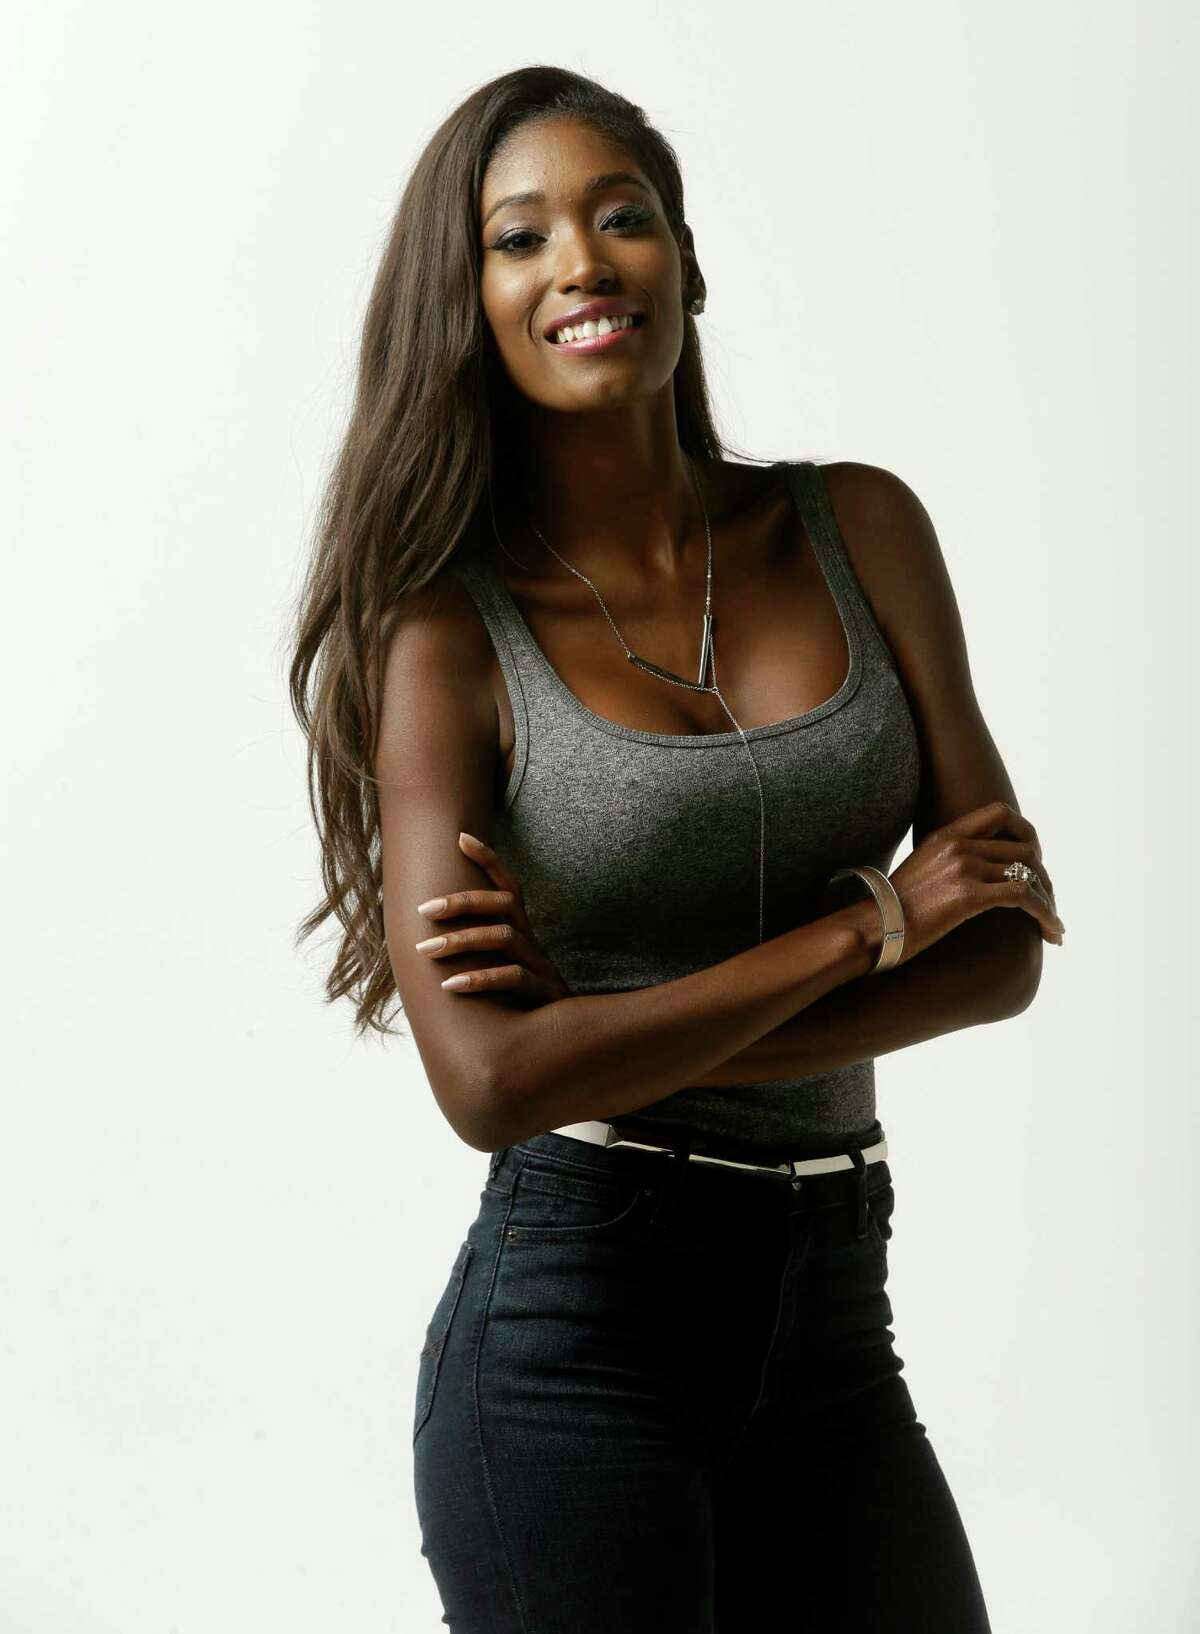 Hadassah Richardson, currently competing on the new season of